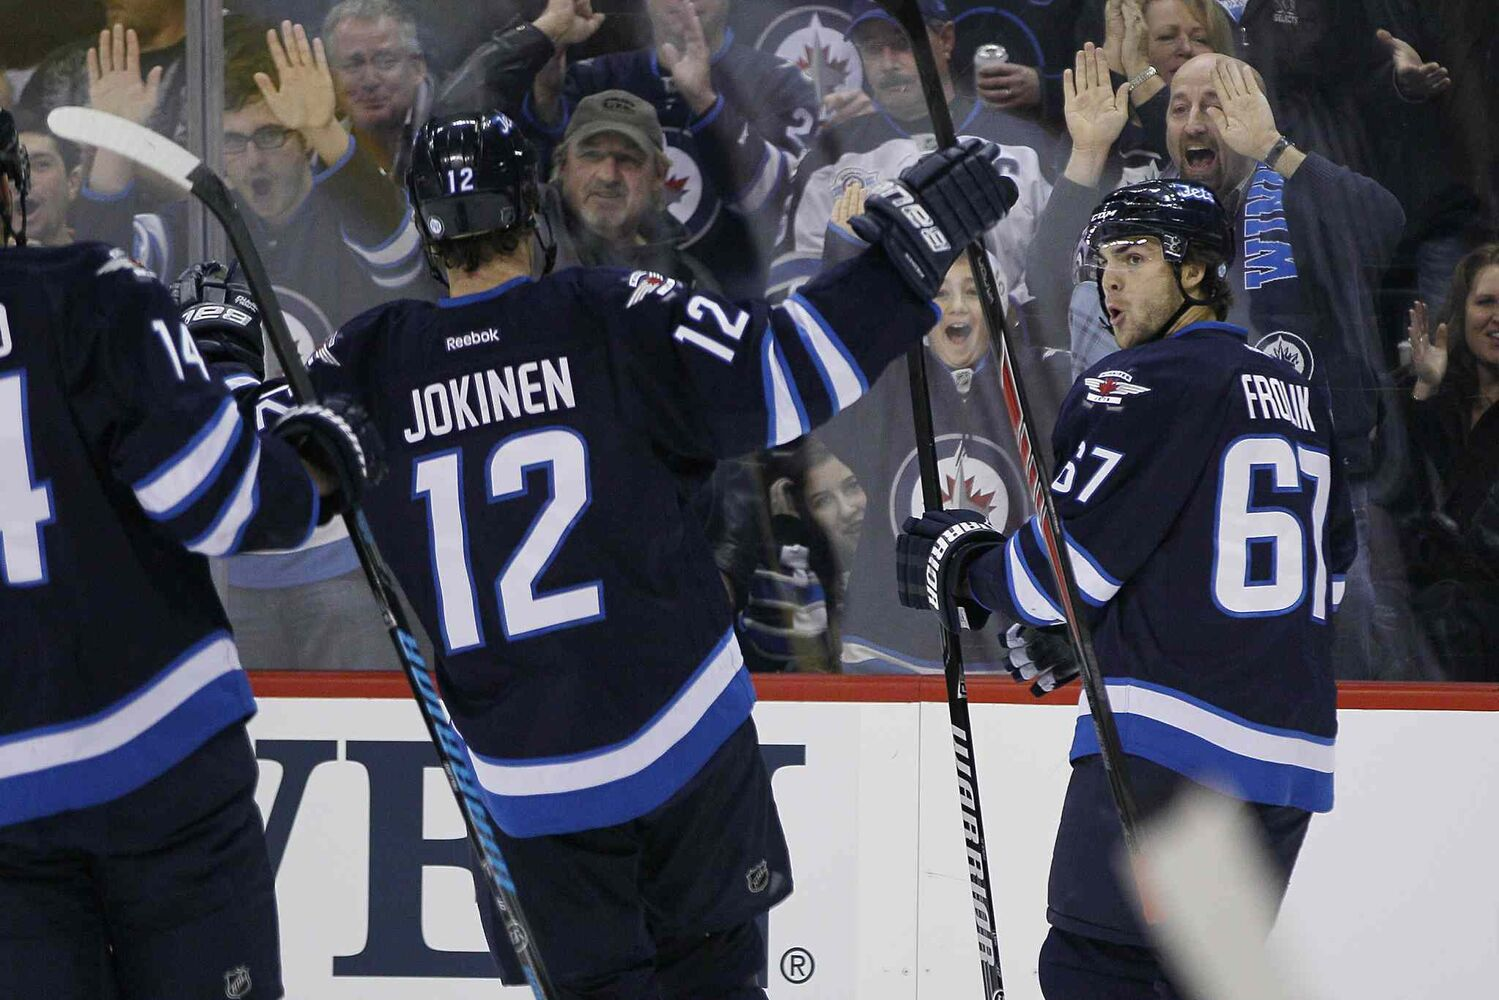 Winnipeg Jets' Michael Frolik (67), Olli Jokinen (12) and Anthony Peluso (14) celebrate Frolik's goal against the Calgary Flames during second period NHL action in Winnipeg on Monday, November 18, 2013.  (John Woods / Winnipeg Free Press)